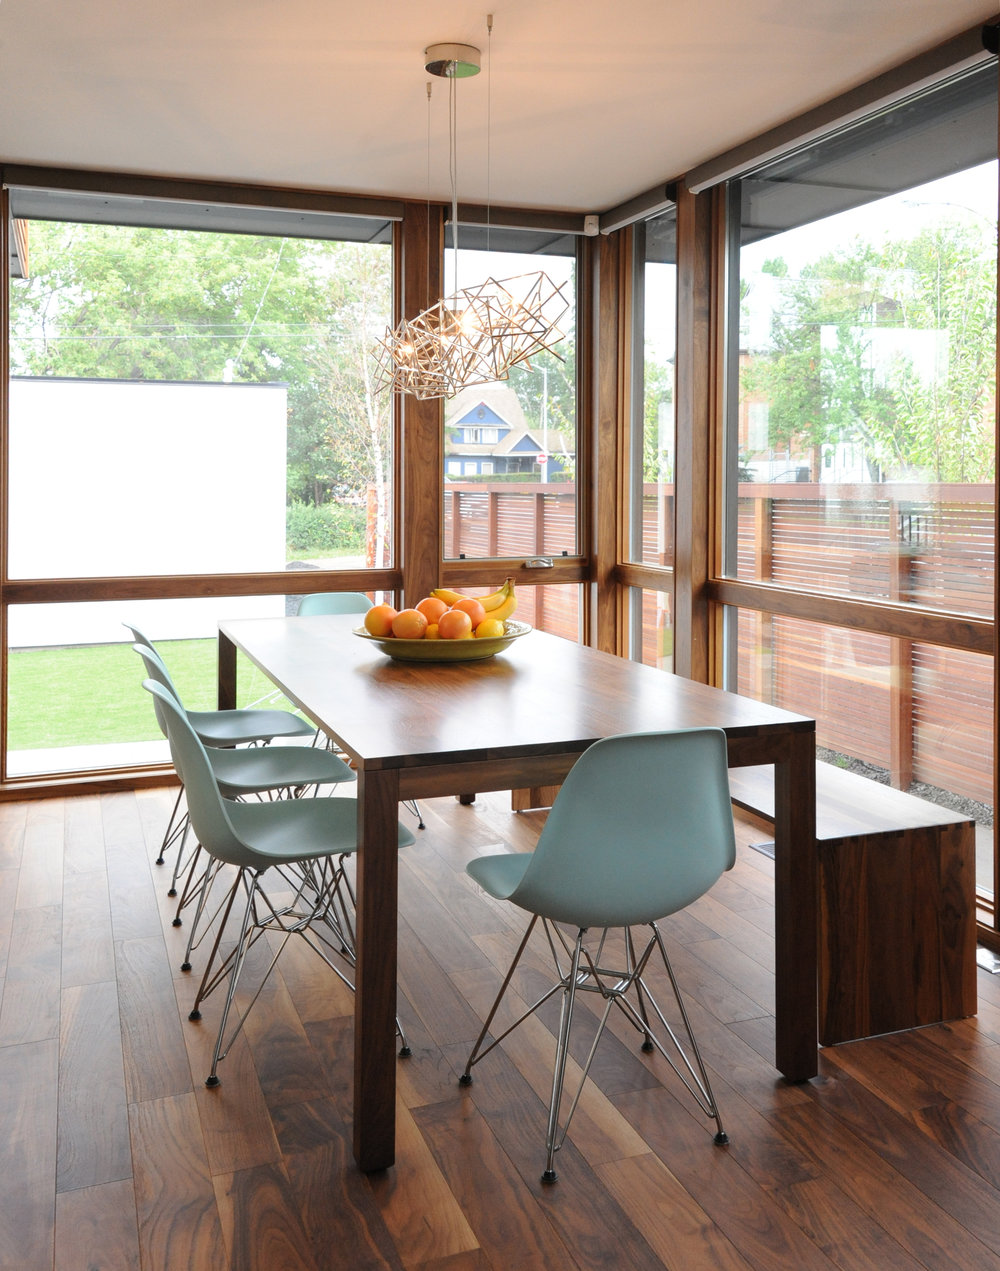 turkel_modern_design_prefab_home_bankview_house_calgary_dining_room.jpg